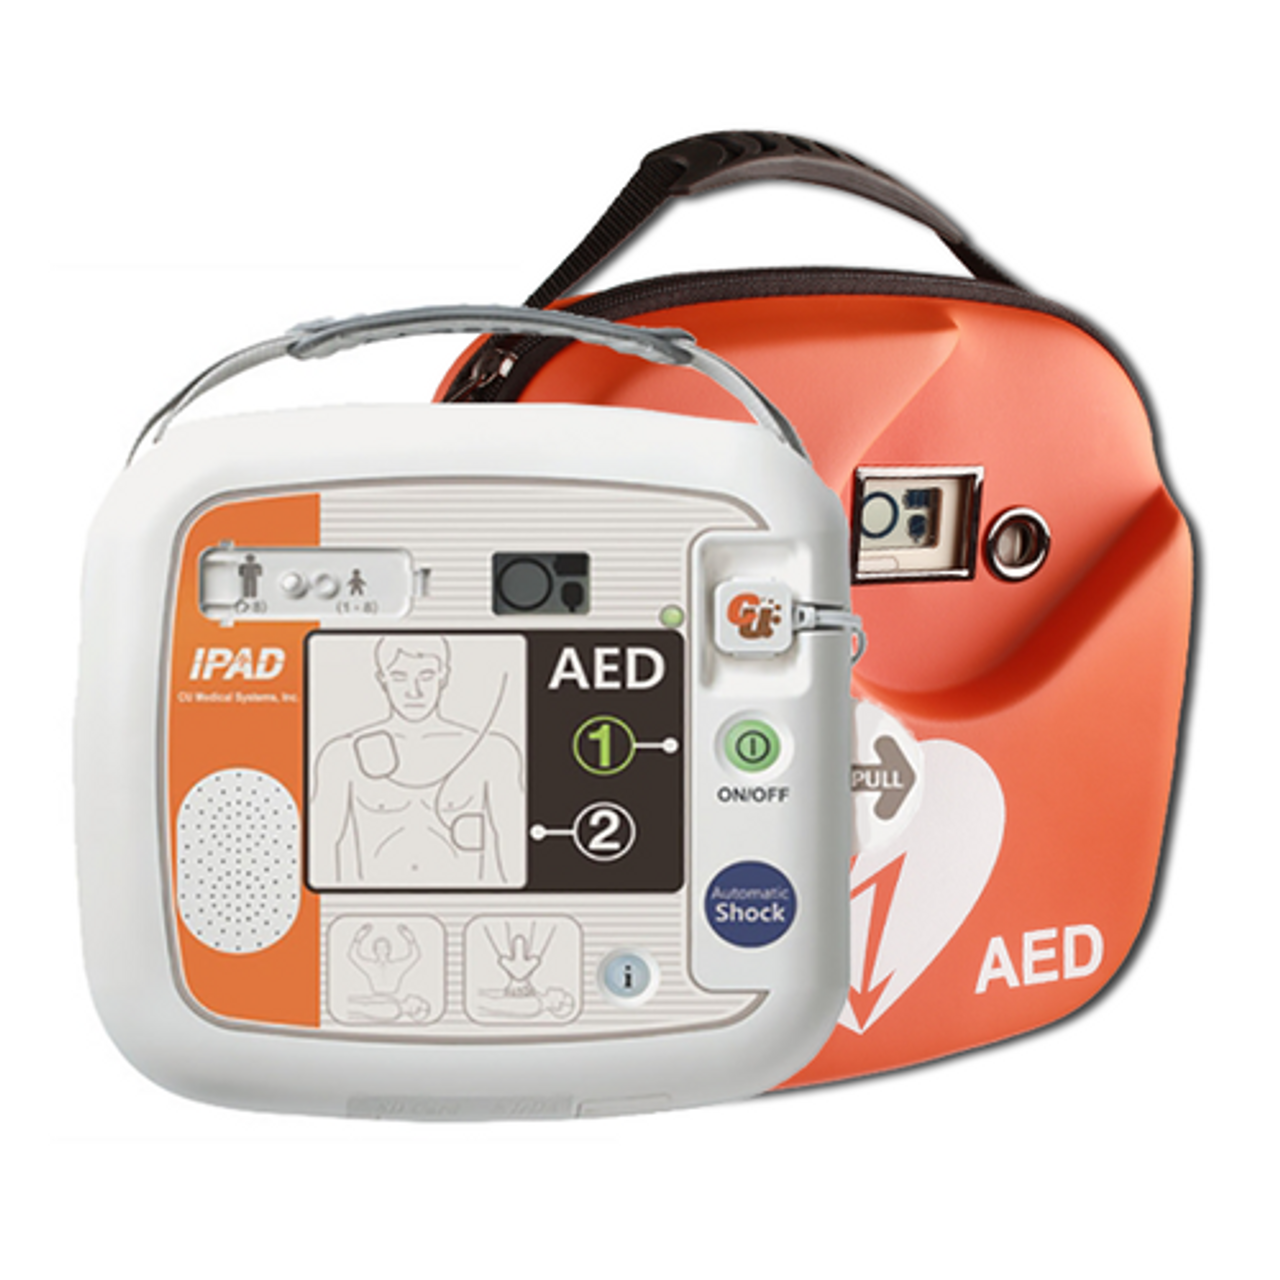 CU Medical I-PAD SP1 Defibrillator